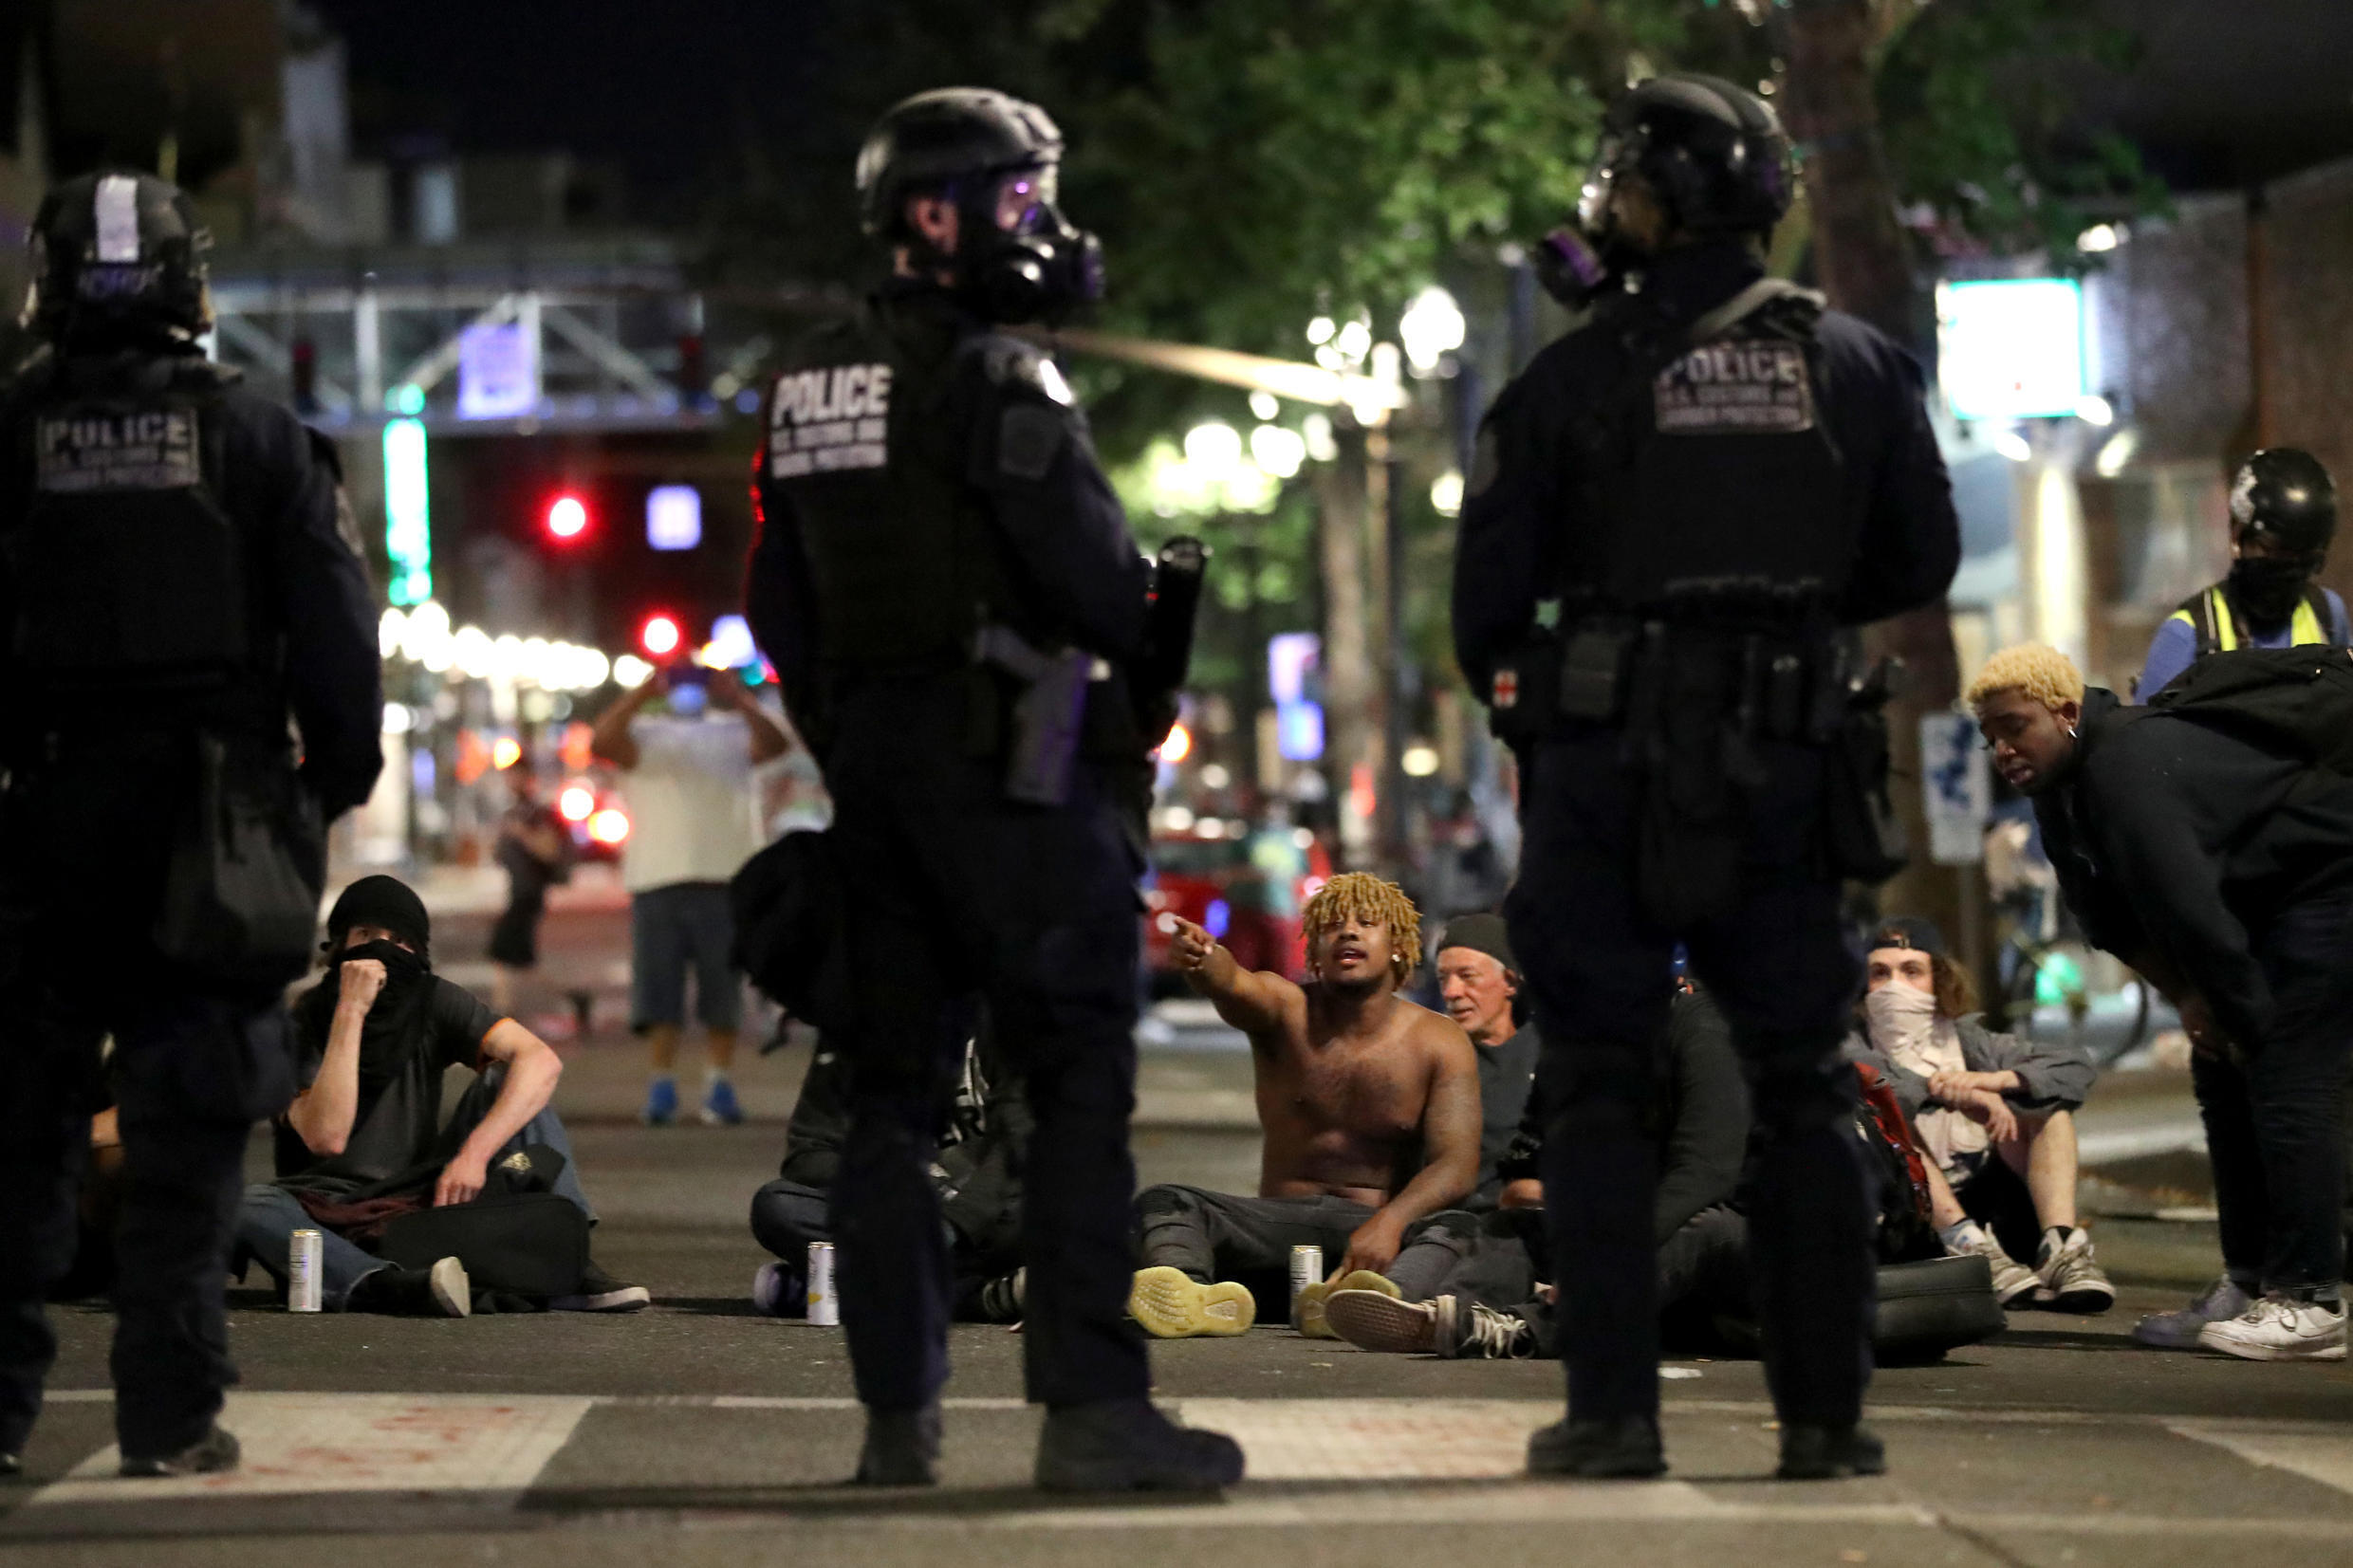 Demonstrators sit on the street during a protest against racial inequality and police violence in Portland, Oregon, U.S., July 27, 2020.